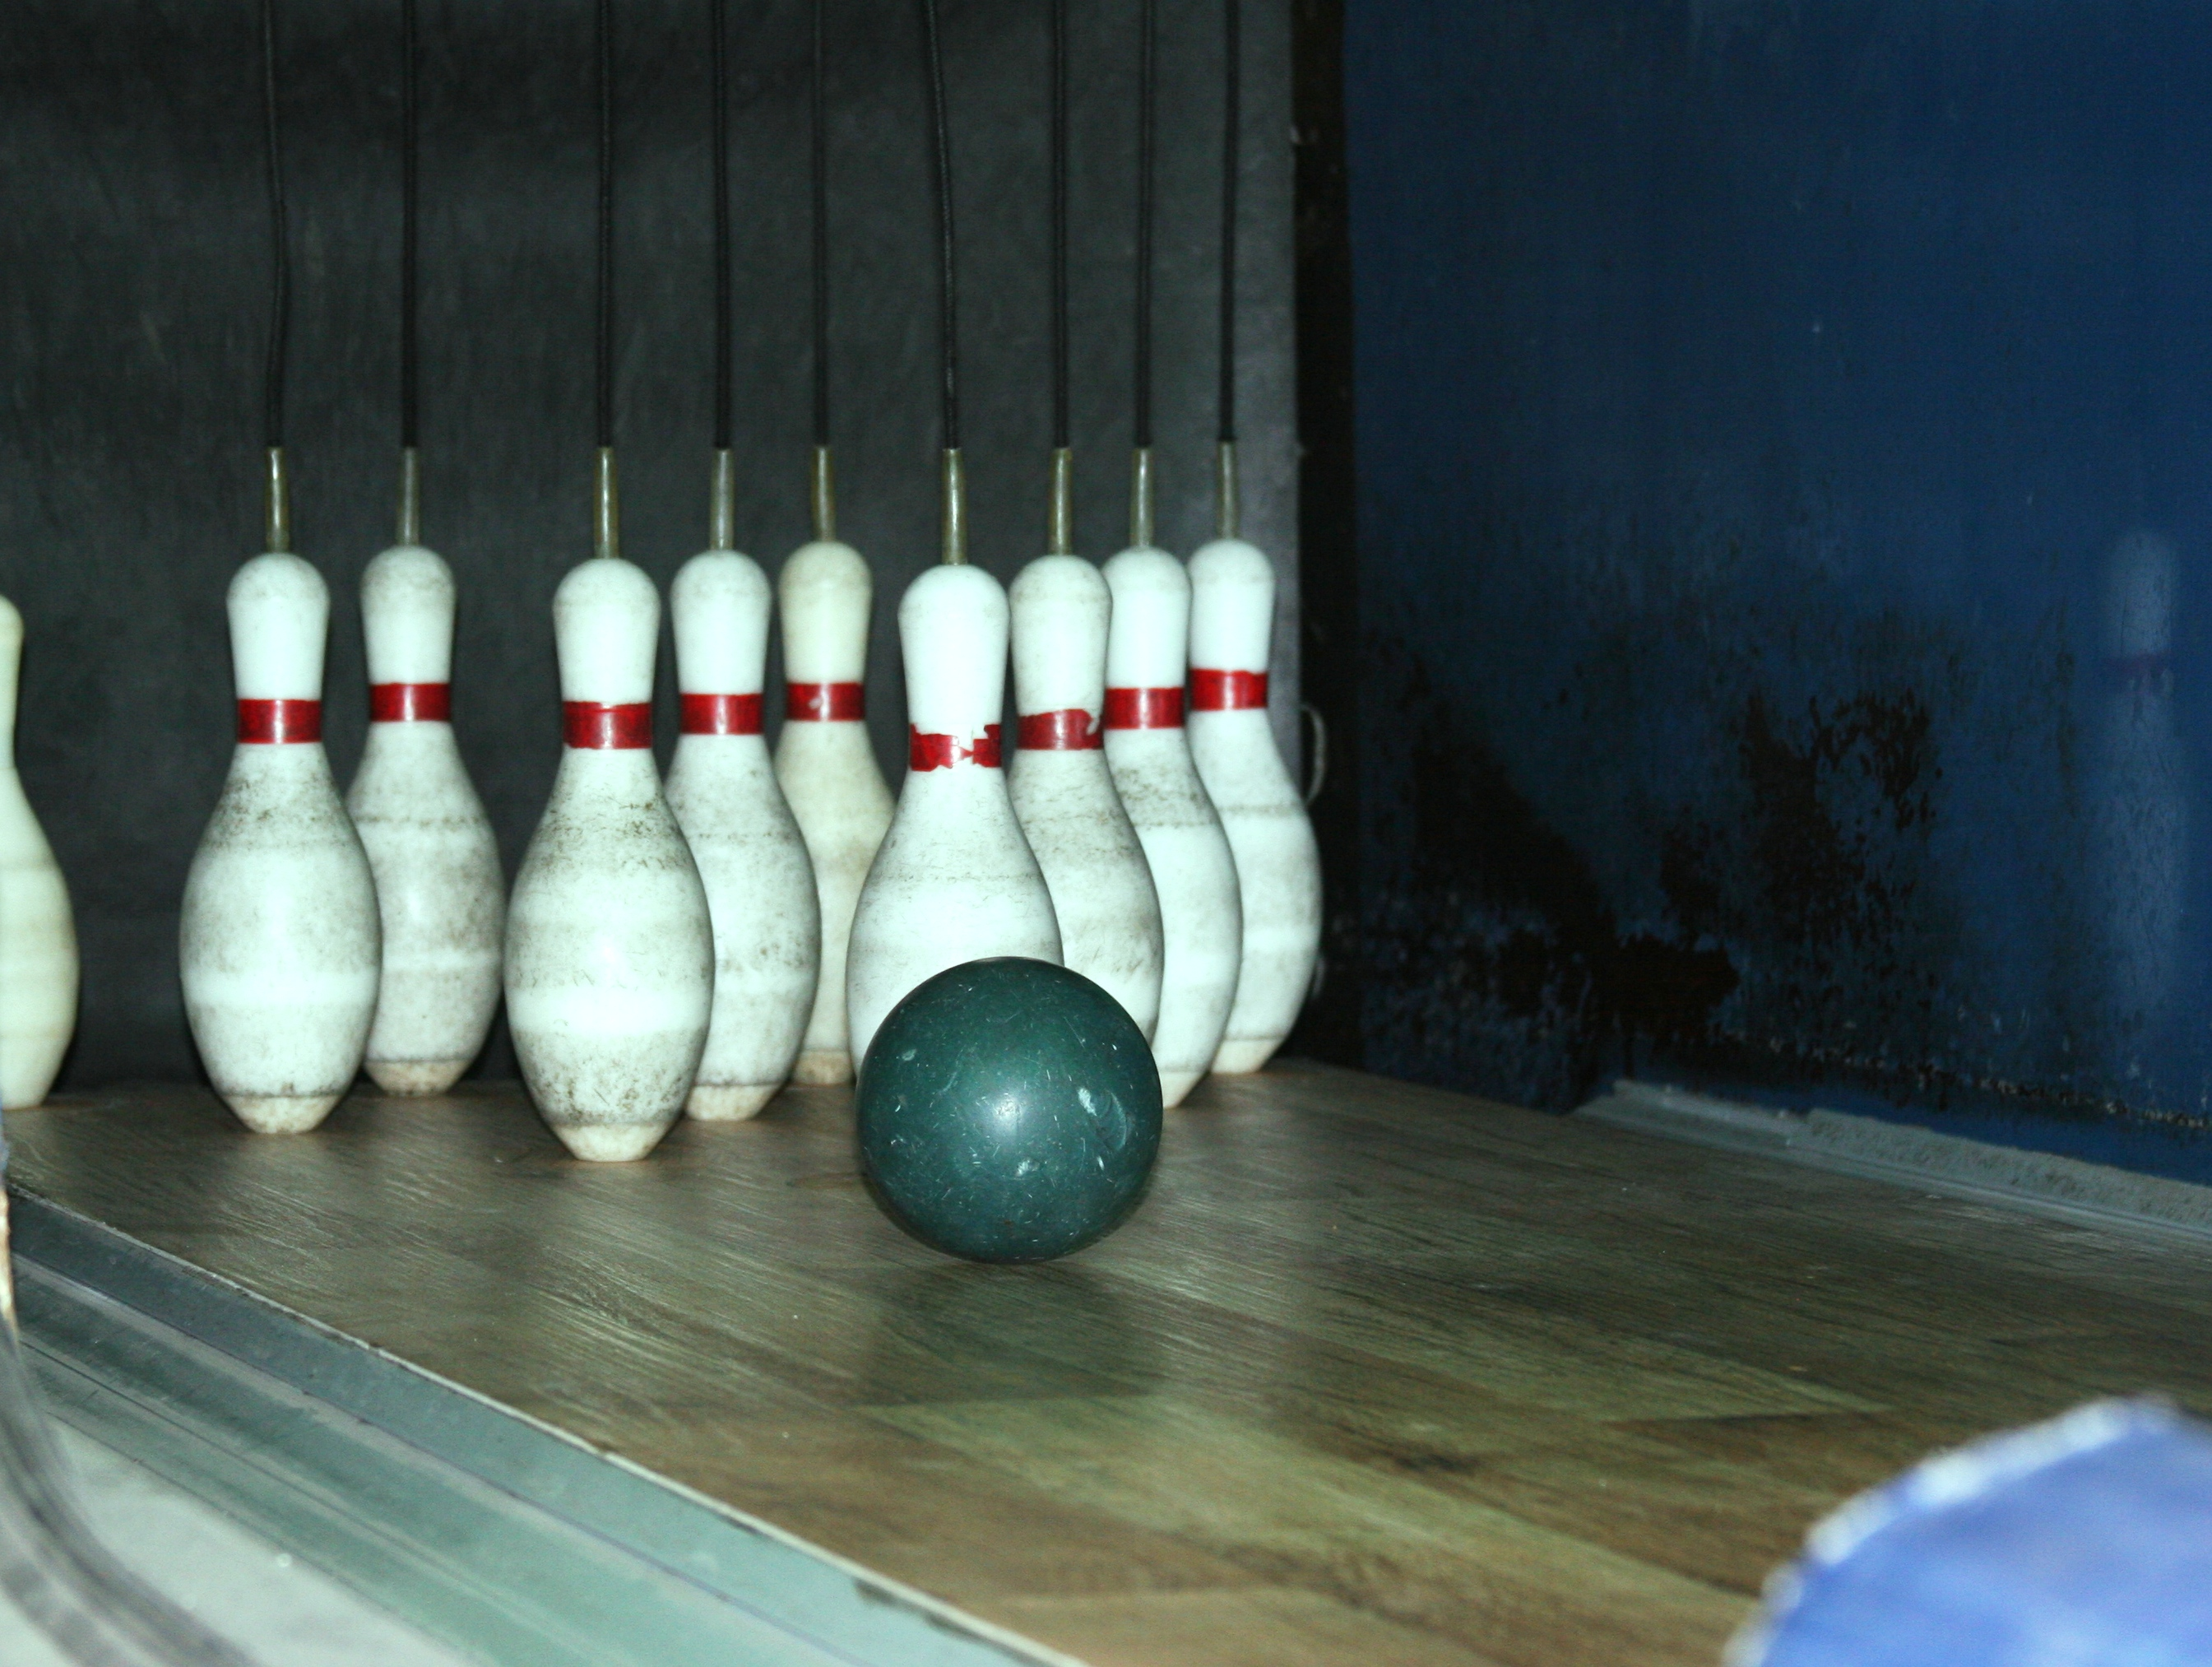 Ten pins going down